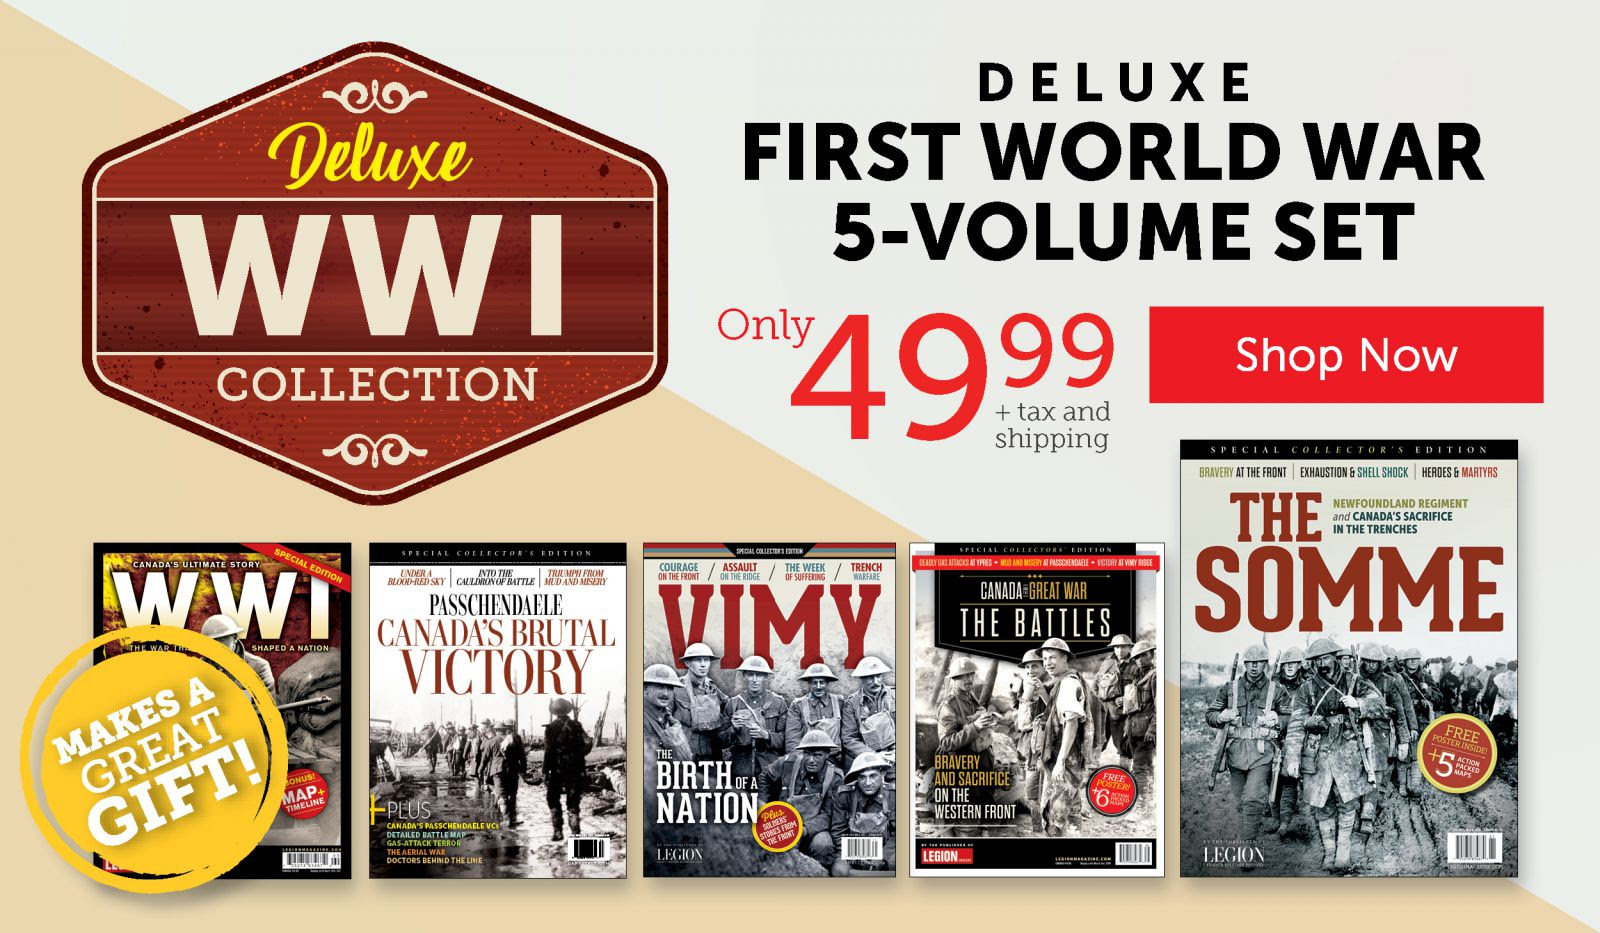 WW I Collection 5-Volume Set – Only $49.99!